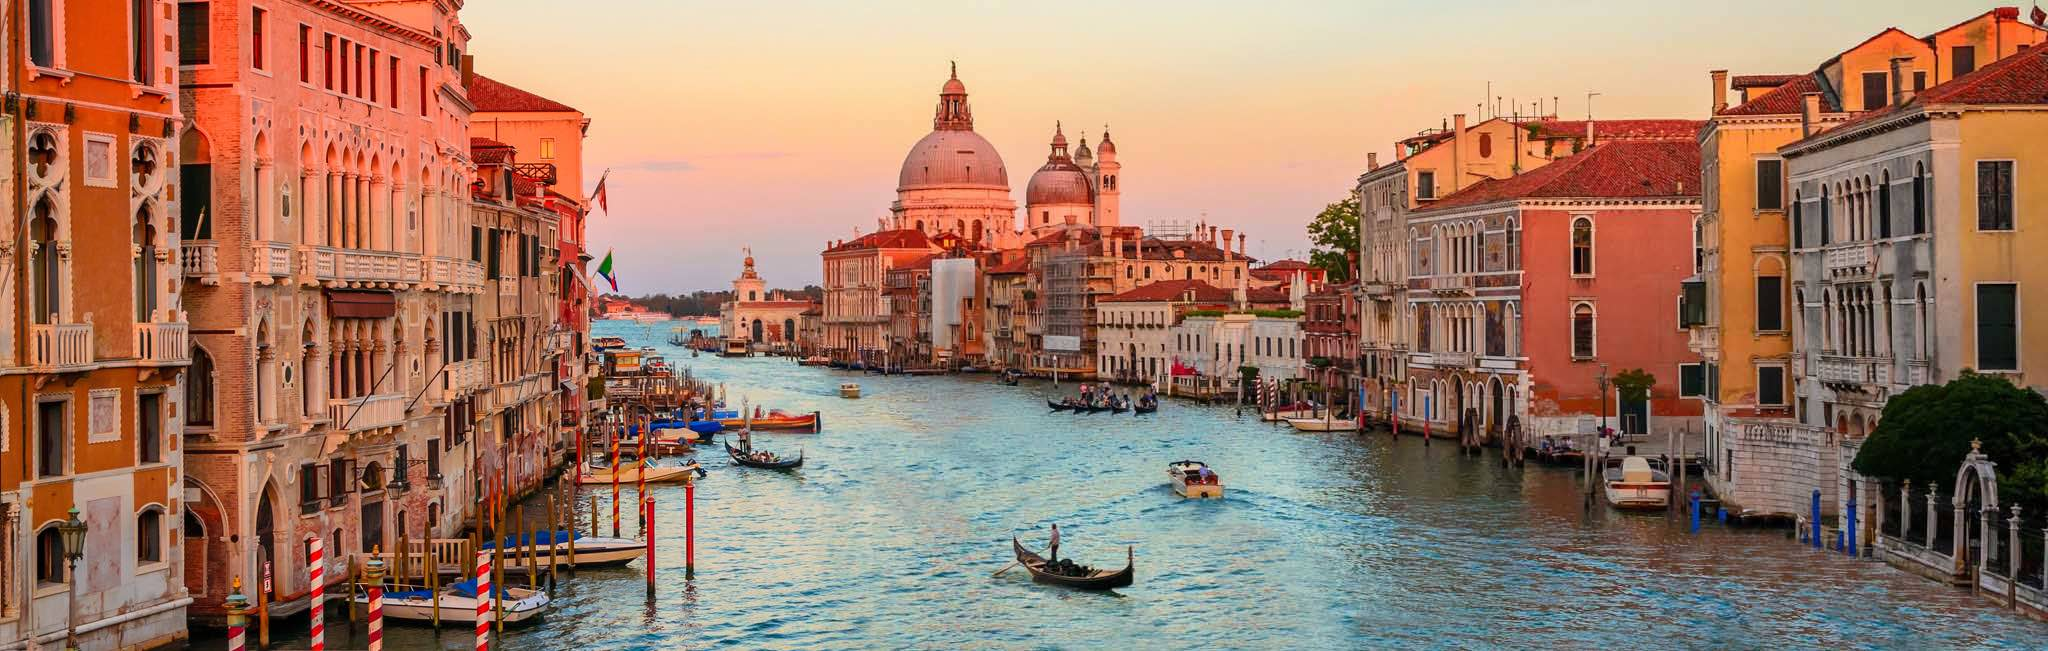 Best Time To Visit Italy 2020 Best Italy Tours | Italy Vacations & Travel Packages 2019 2020